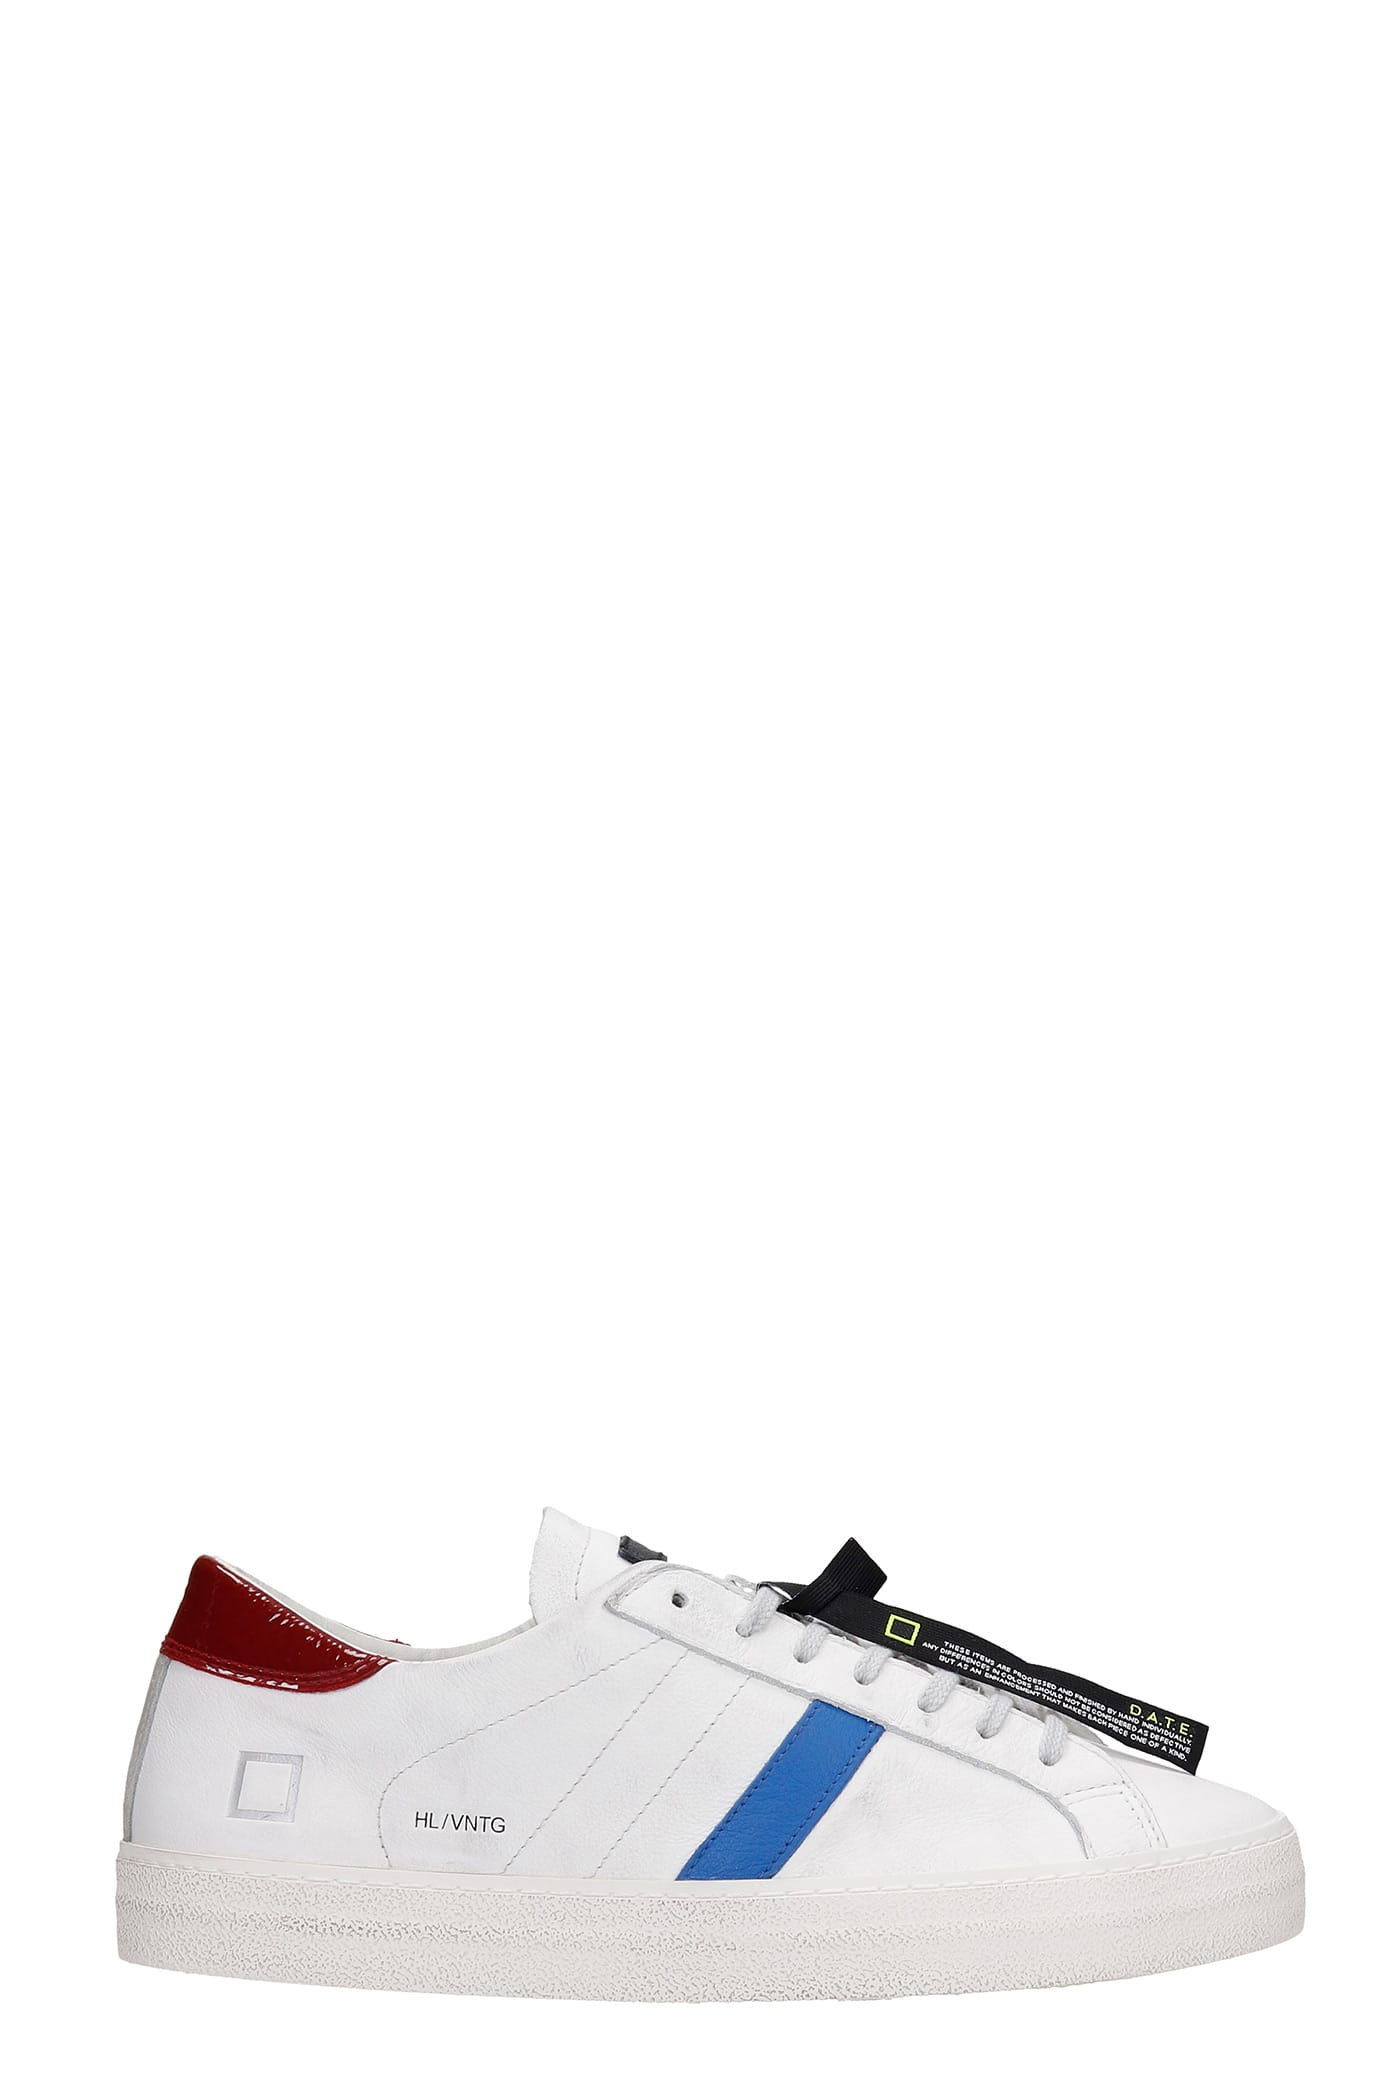 D.a.t.e. Leathers HILL LOW SNEAKERS IN WHITE LEATHER